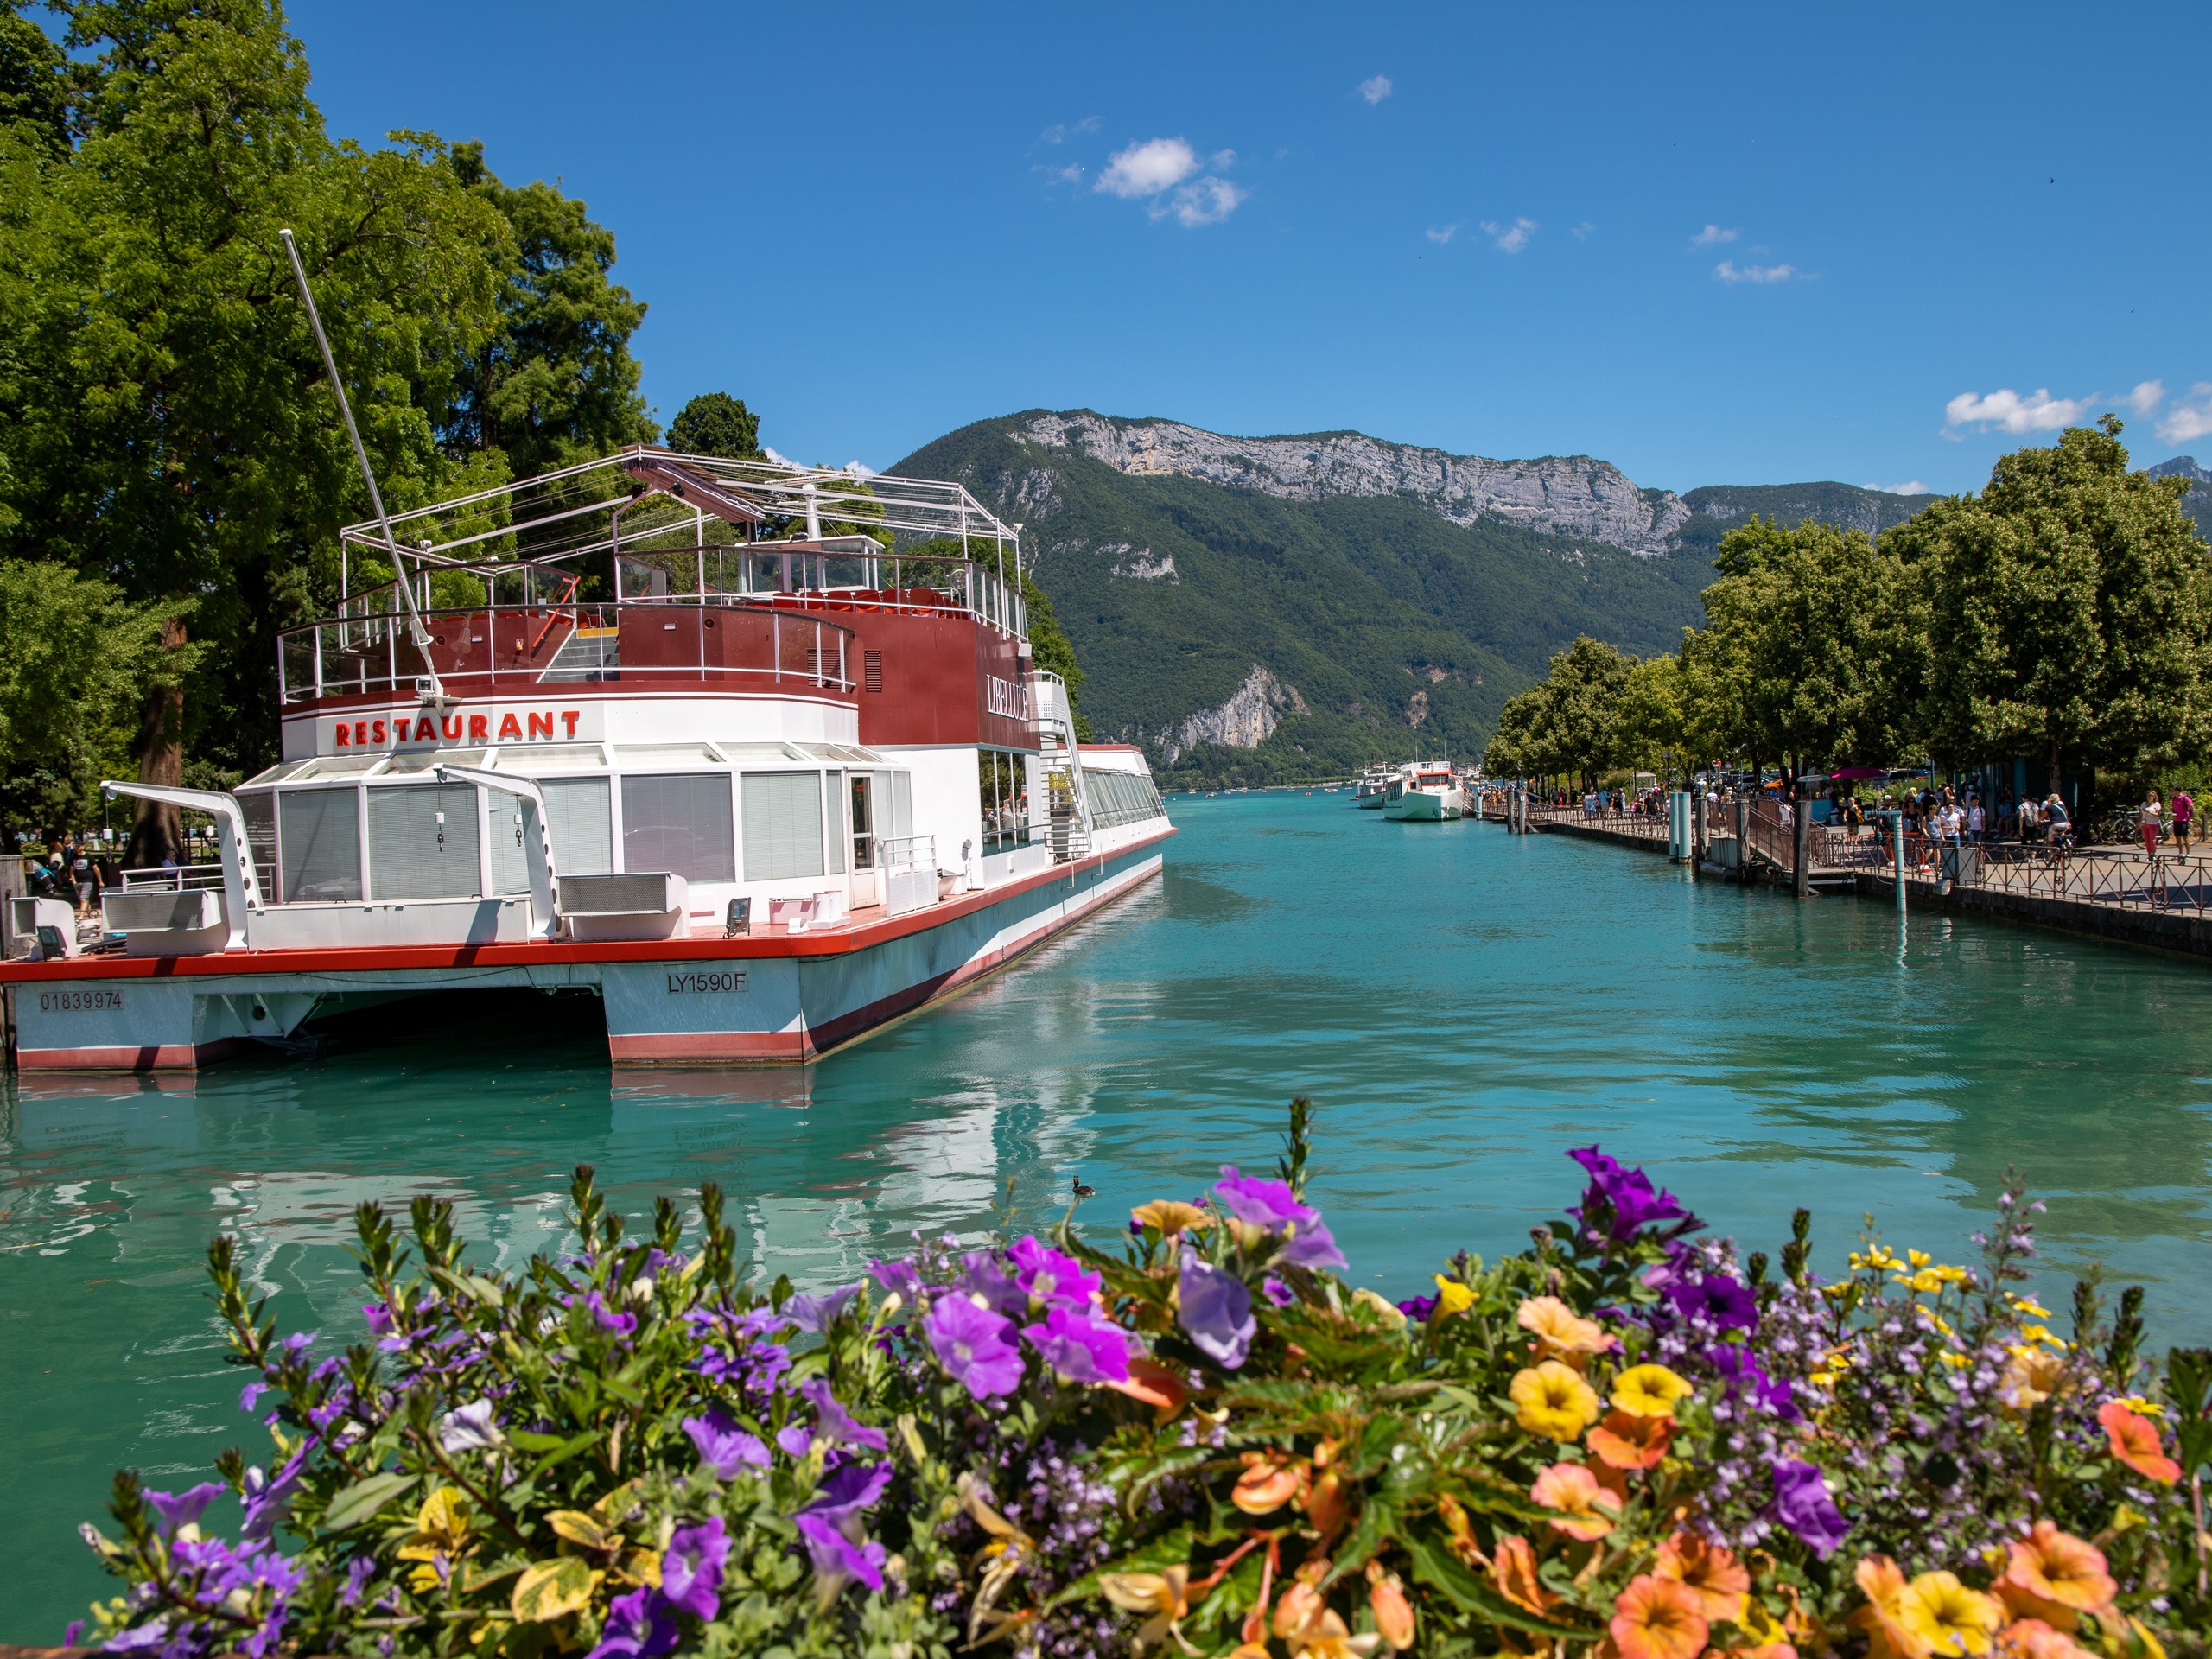 Boat on the Annecy Lake in France